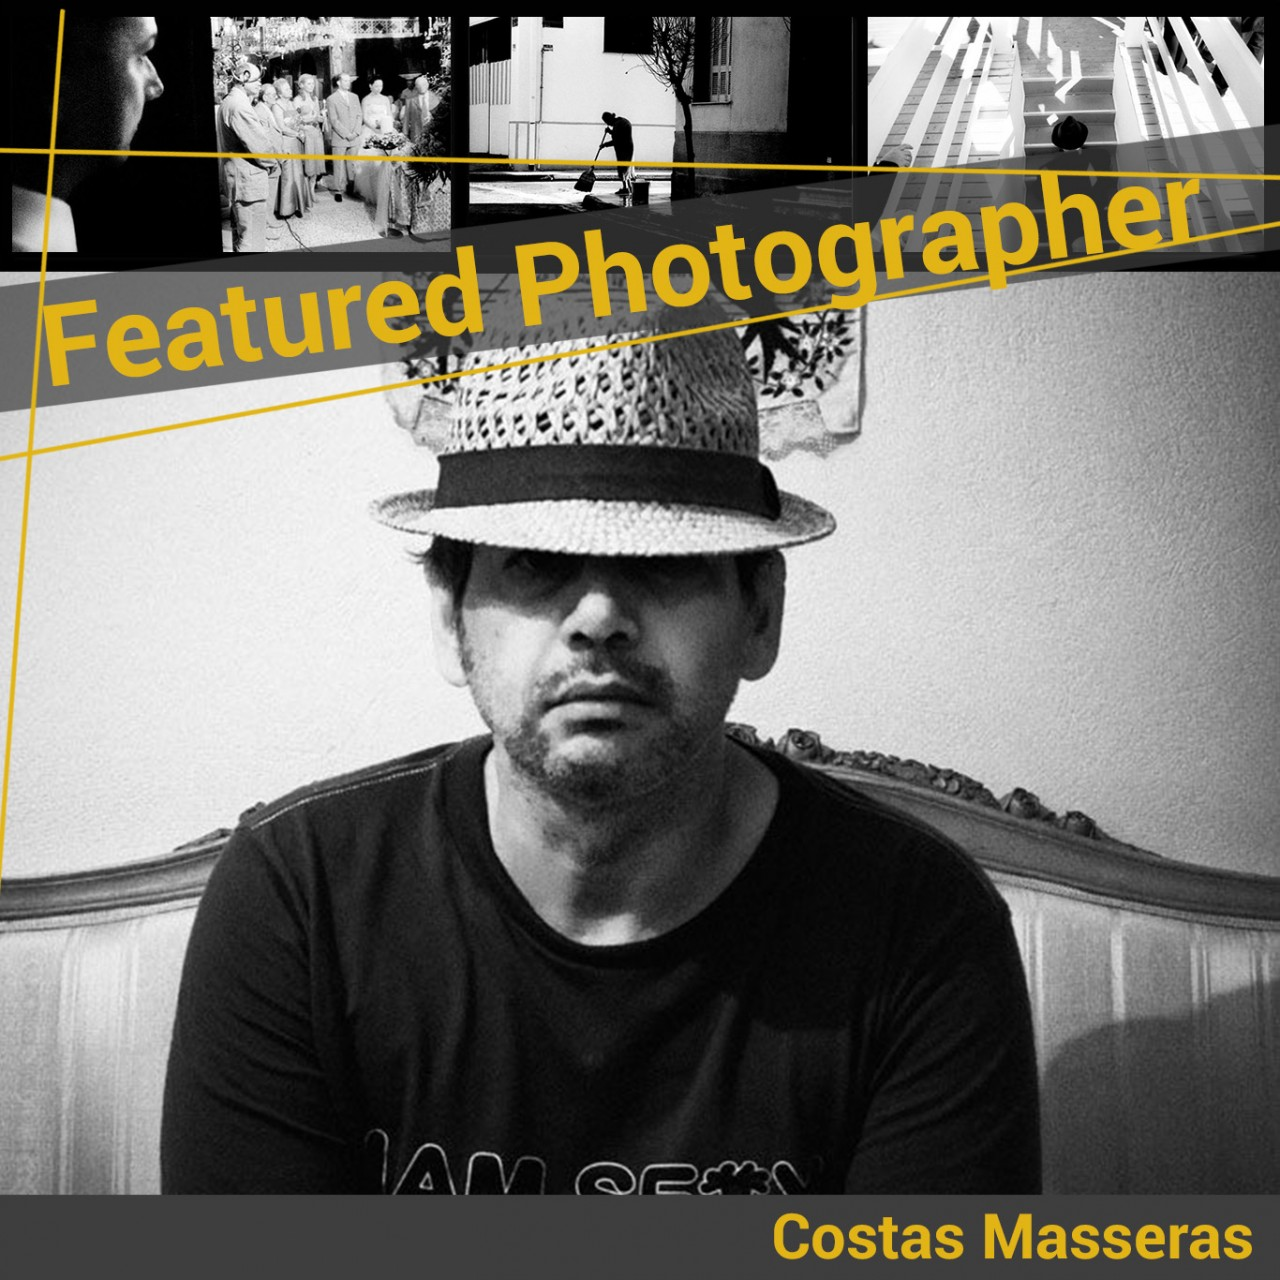 costasmasserasfeatured